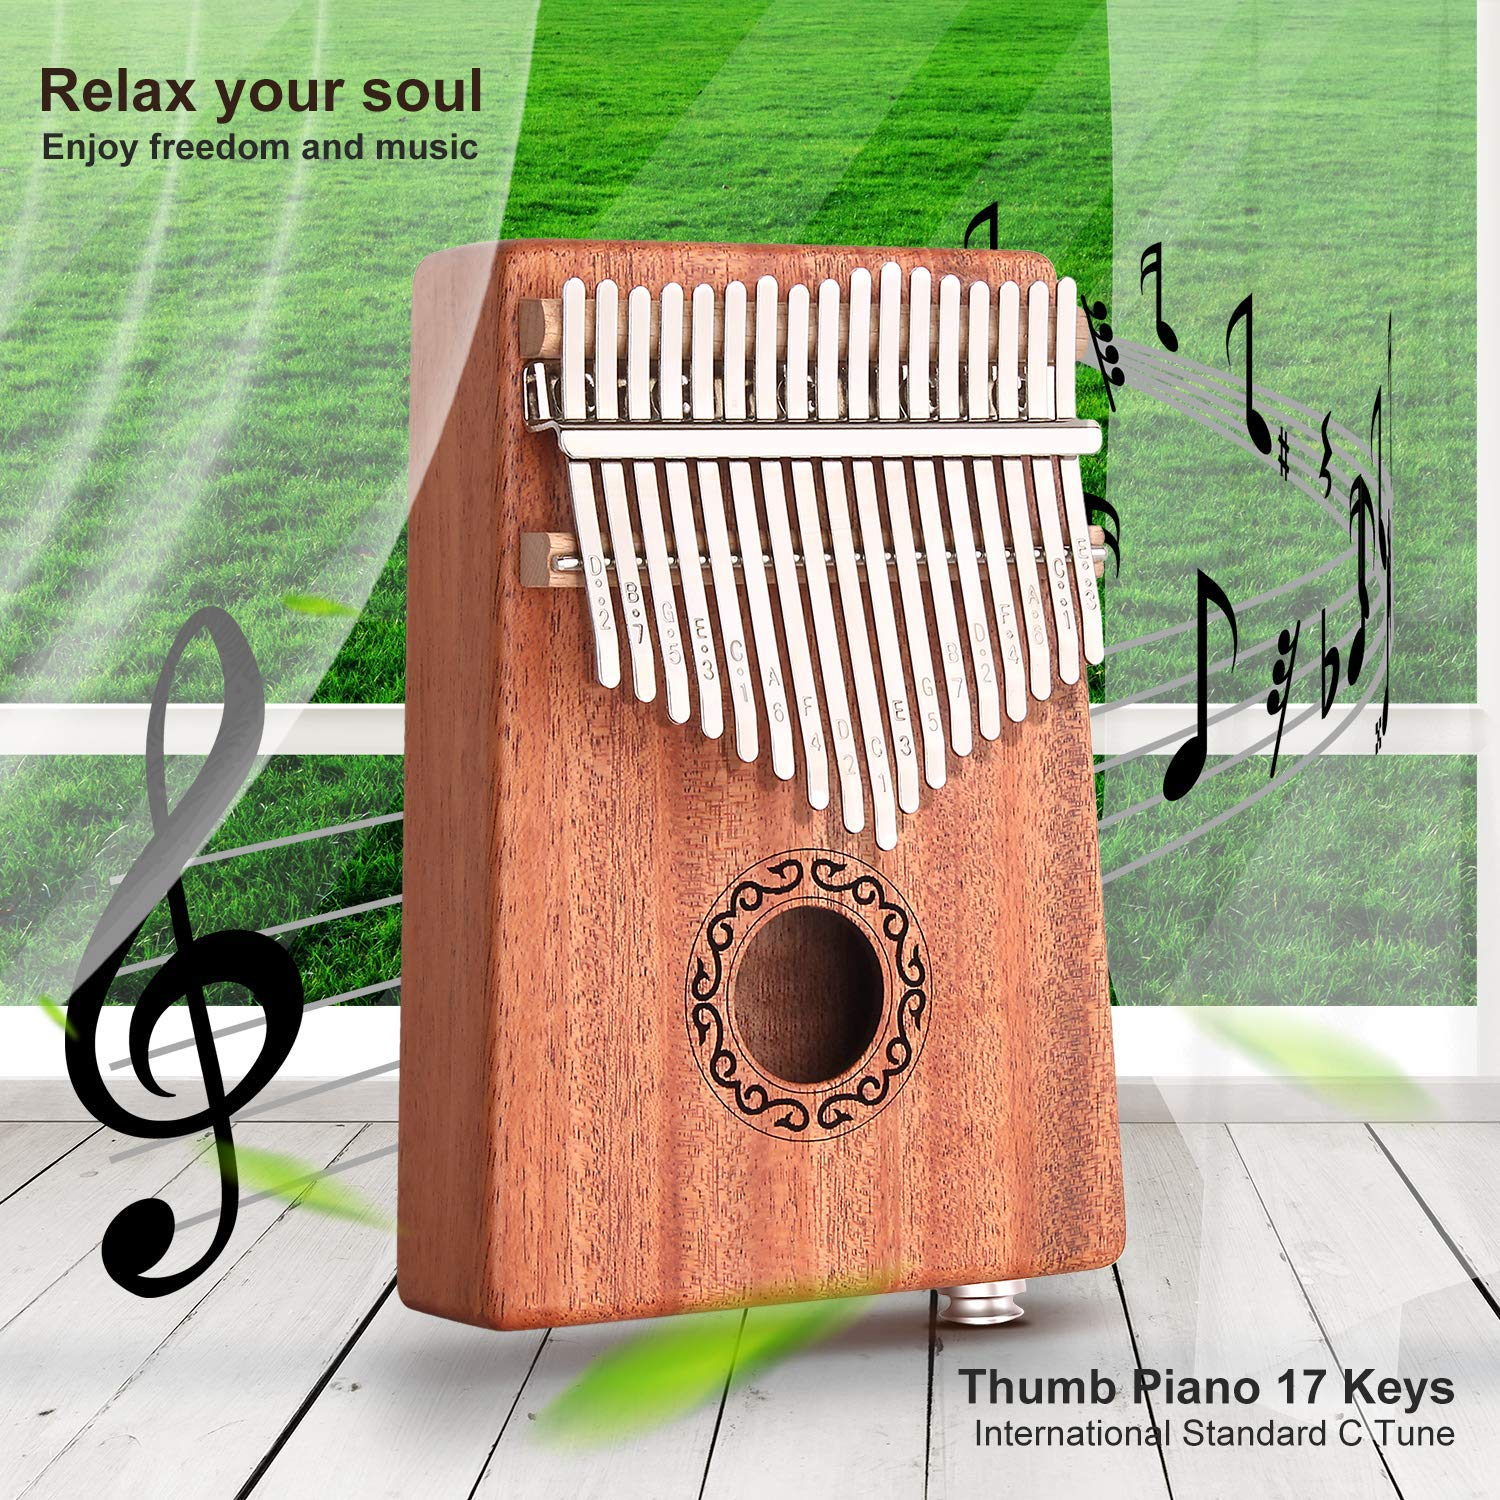 CXhome Electric Kalimba 17 Key Thumb Piano,Mbira African Mahogany Finger Piano Pickup with 6.35mm Audio Interface Sanza Hand Kit, Likembe Musical Instruments for beginners or professioners by CXhome (Image #7)